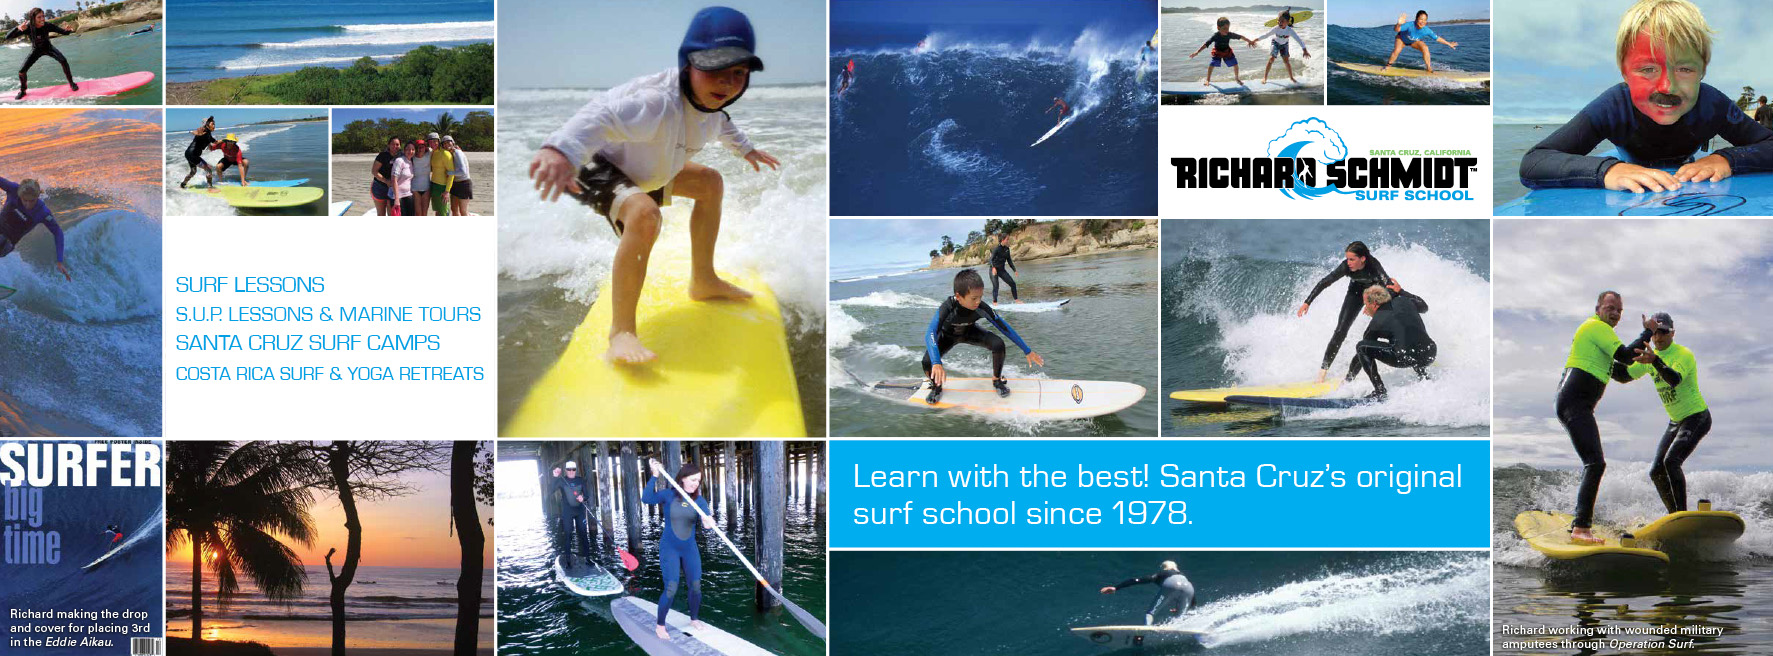 Richard Schmidt Surf School, Santa Cruz, CA